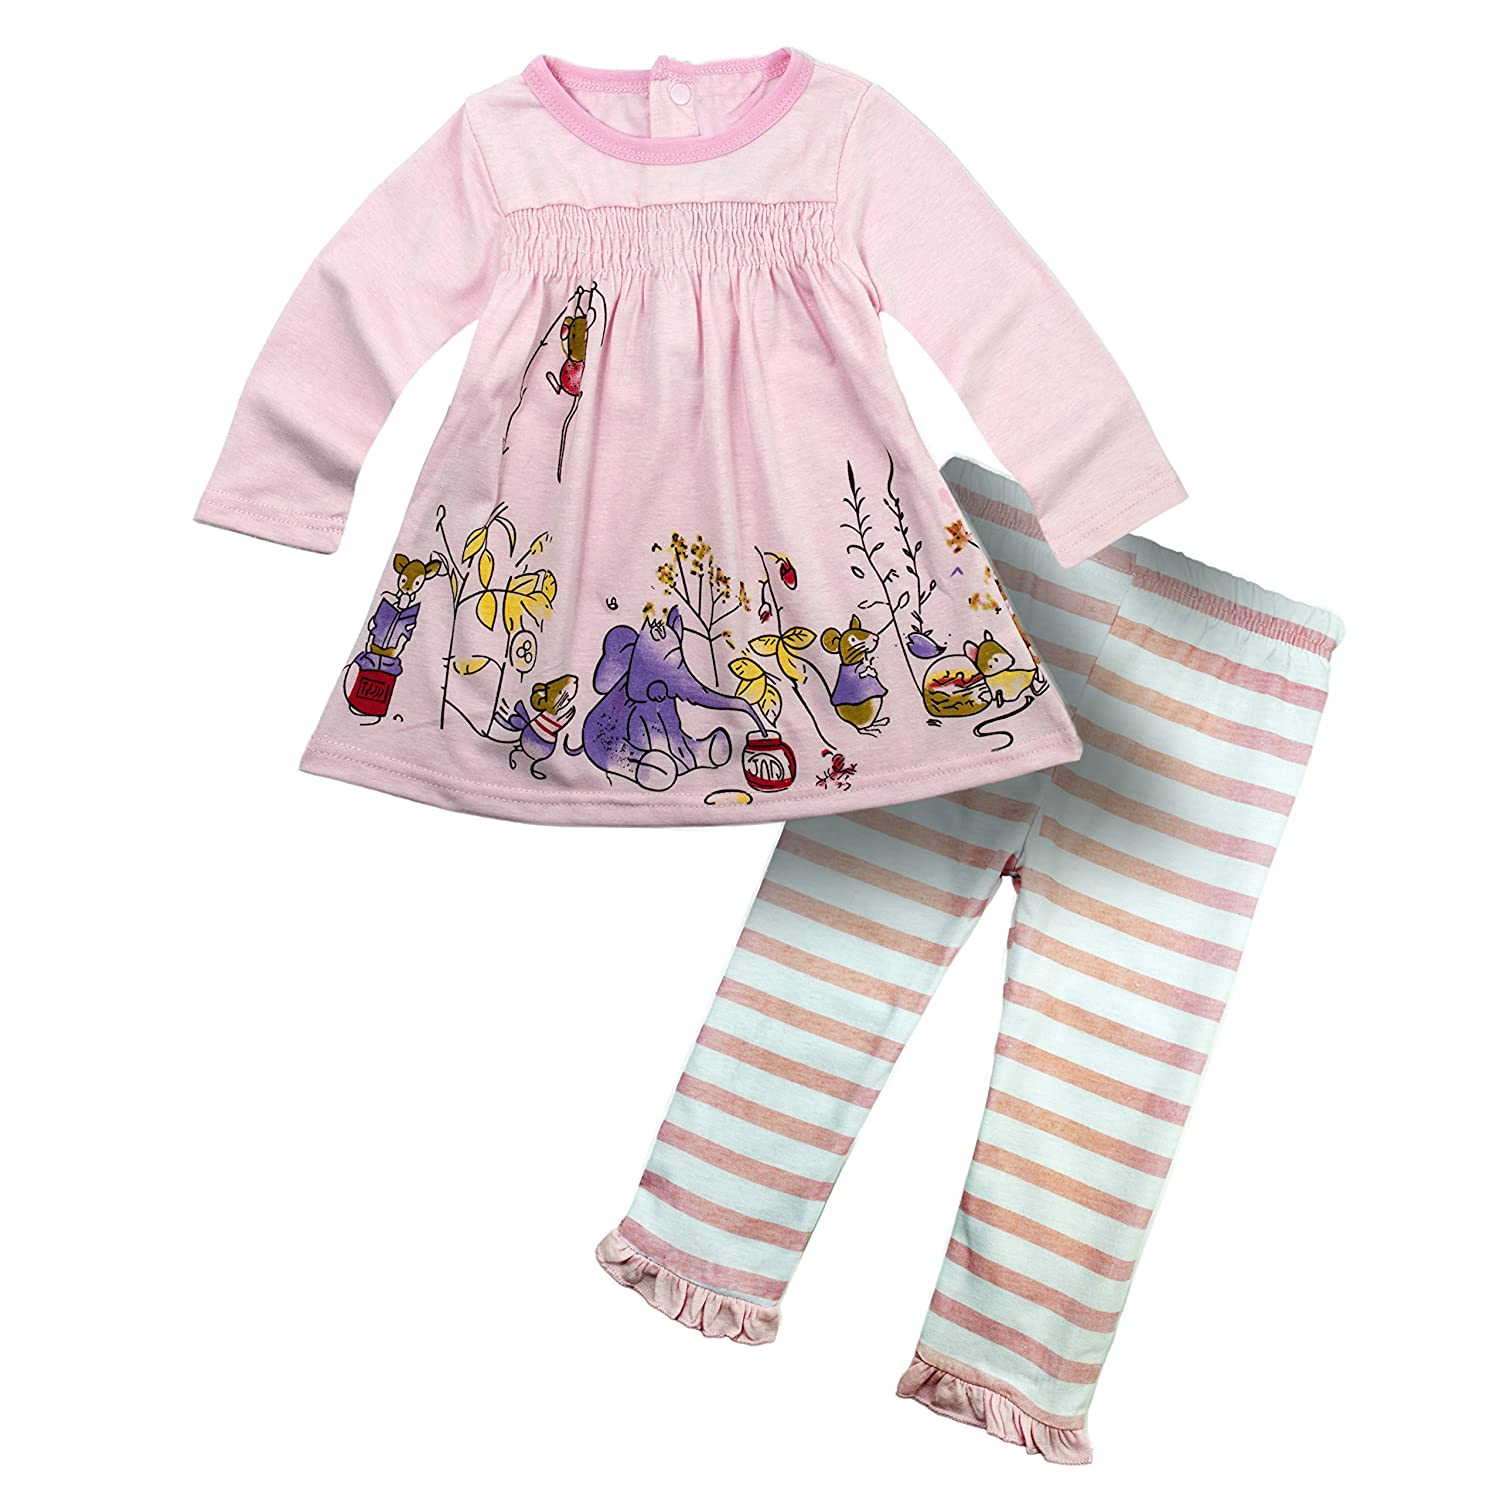 BIG ELEPHANT Baby Girls'2 Pieces Long Sleeve Shirt Pants Set Pink G12C